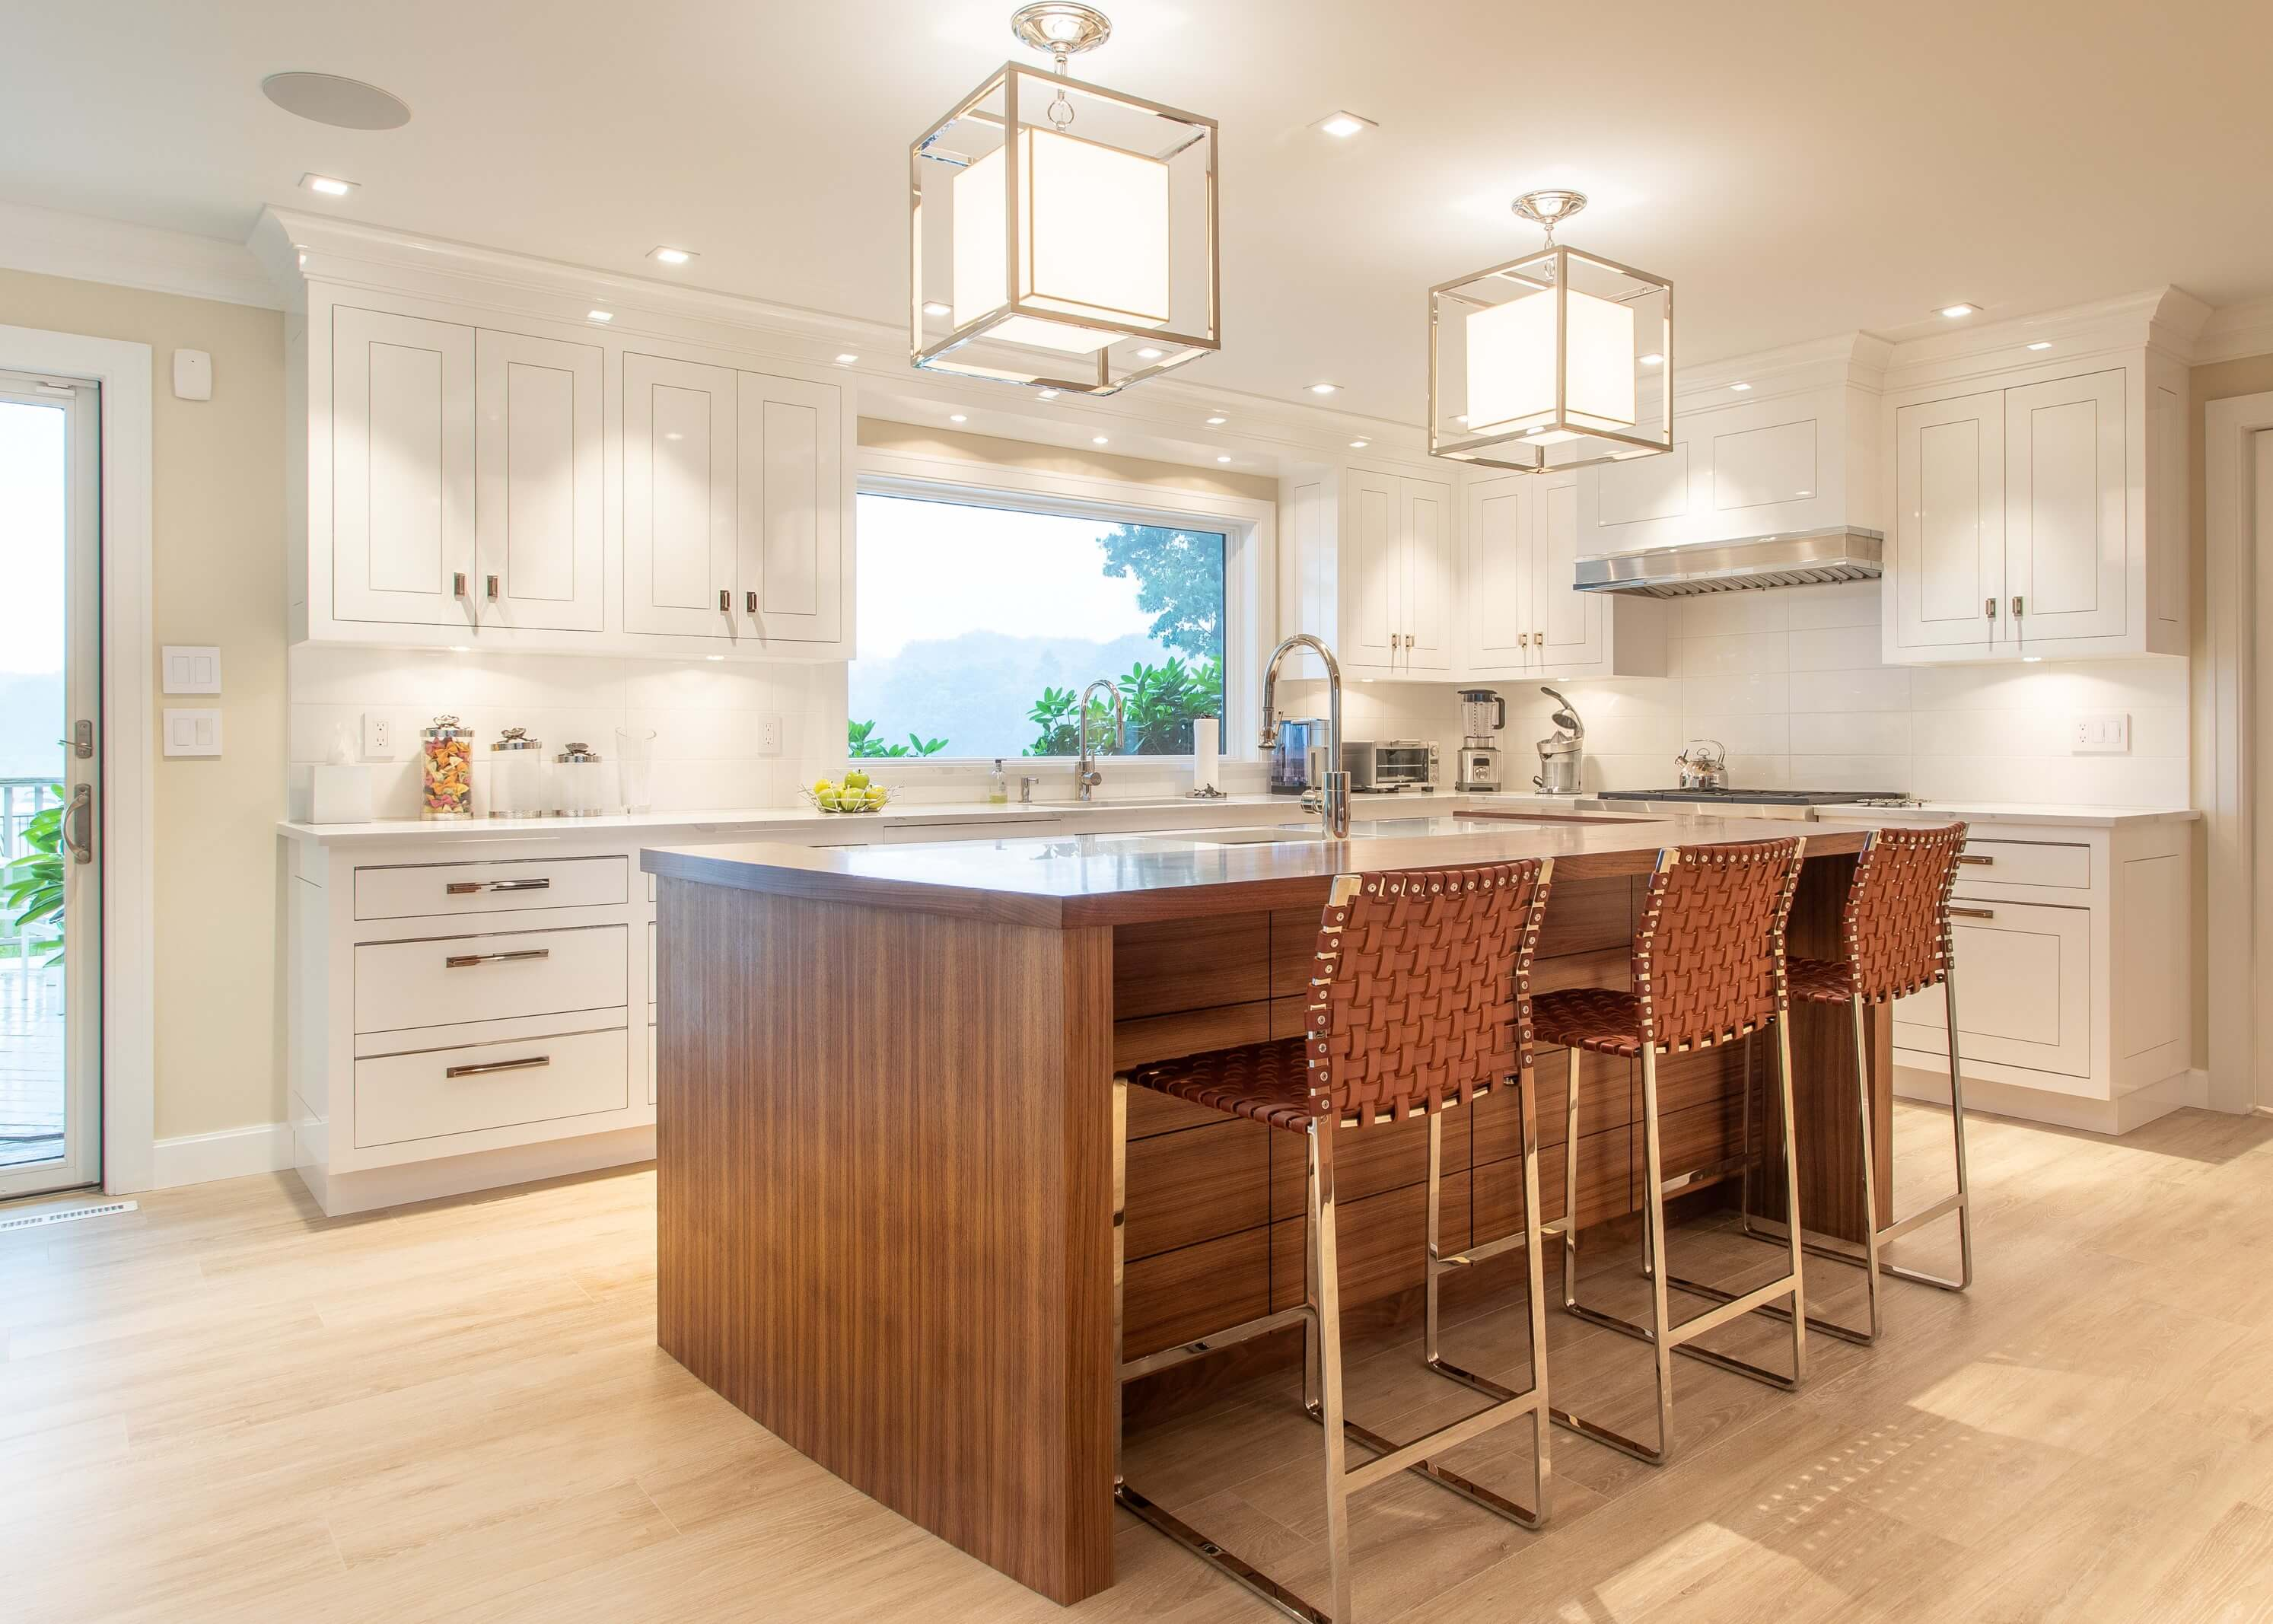 Beautiful Luxury Kitchen, Waterfall walnut counter top with hand painted white cabinets